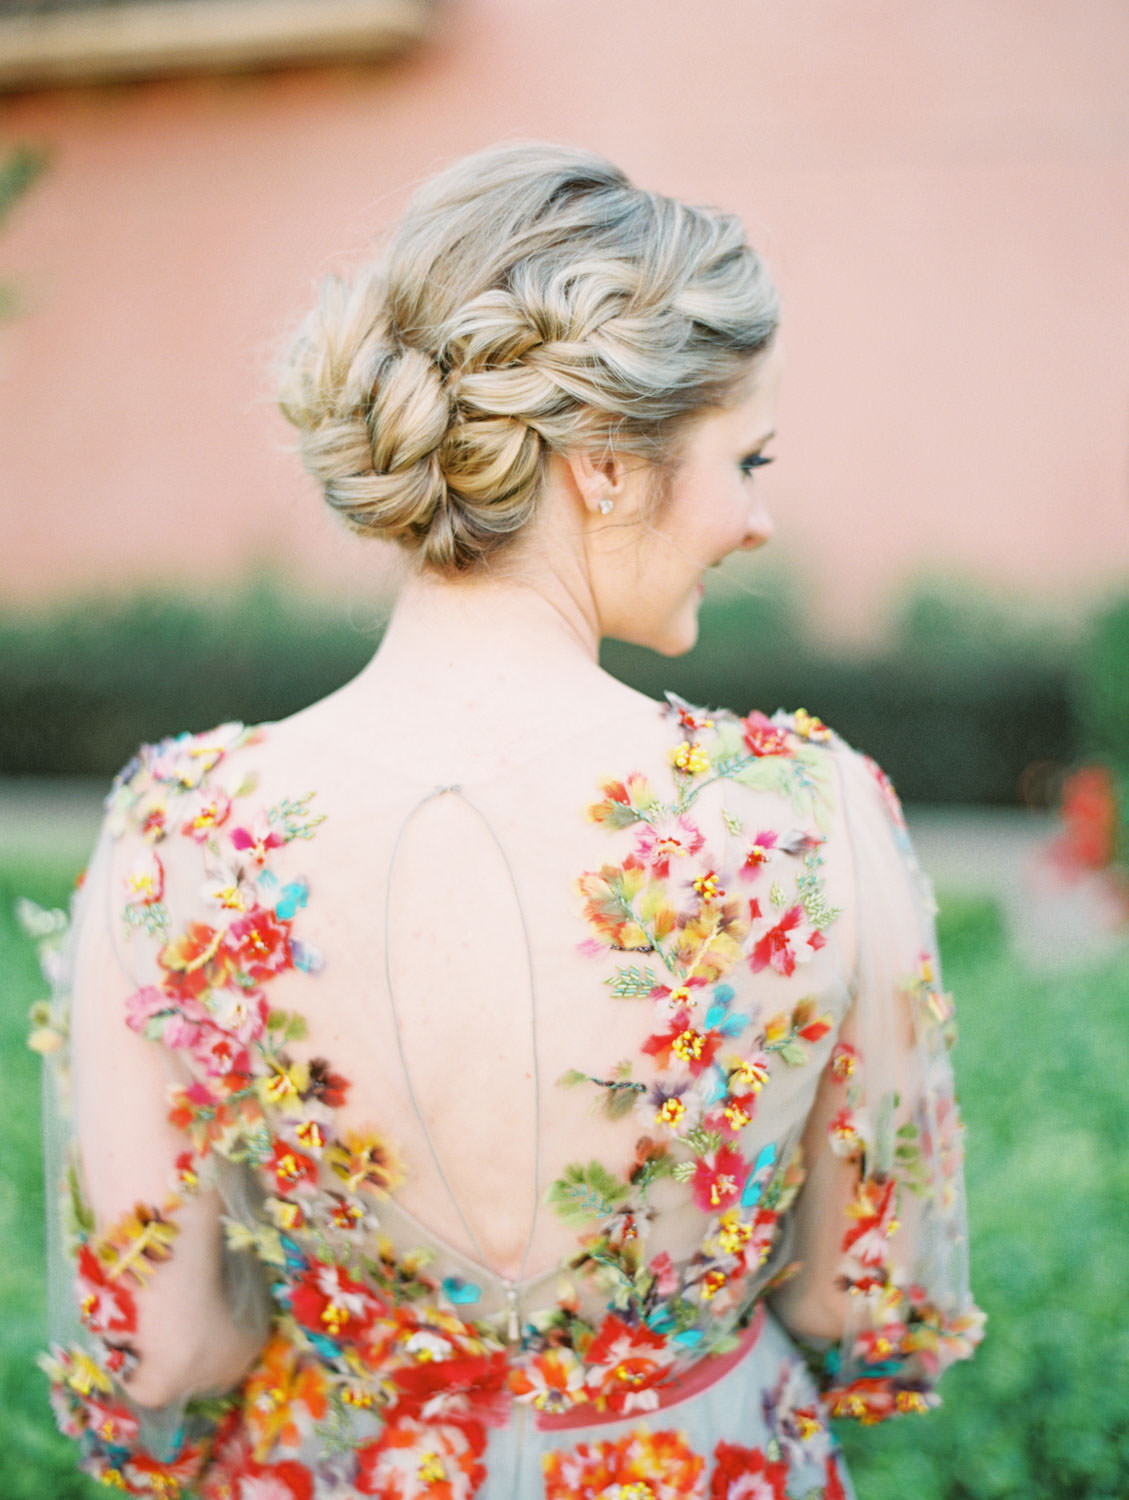 Bride's dutch braid updo for a non-traditional non-bridal wedding day look. Bride wearing a Marchesa blue and pink floral long sleeve couture gown with floral appliques. Fairmont Grand del Mar wedding published on Martha Stewart Weddings